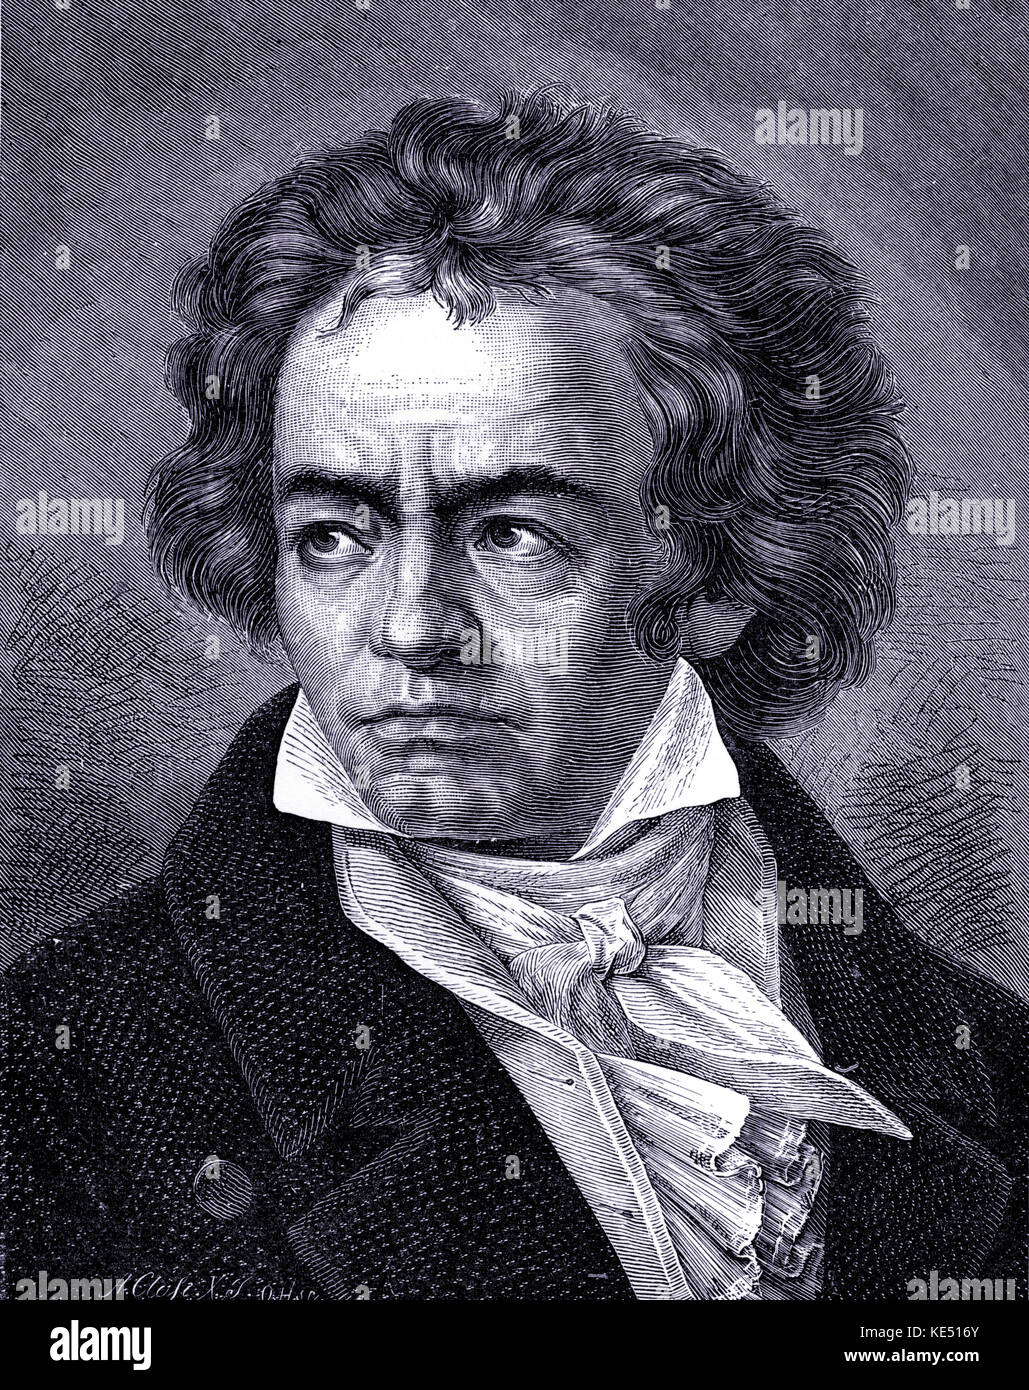 Ludwig van Beethoven - portrait of the German composer. 17 December  1770- 26 March 1827. - Stock Image